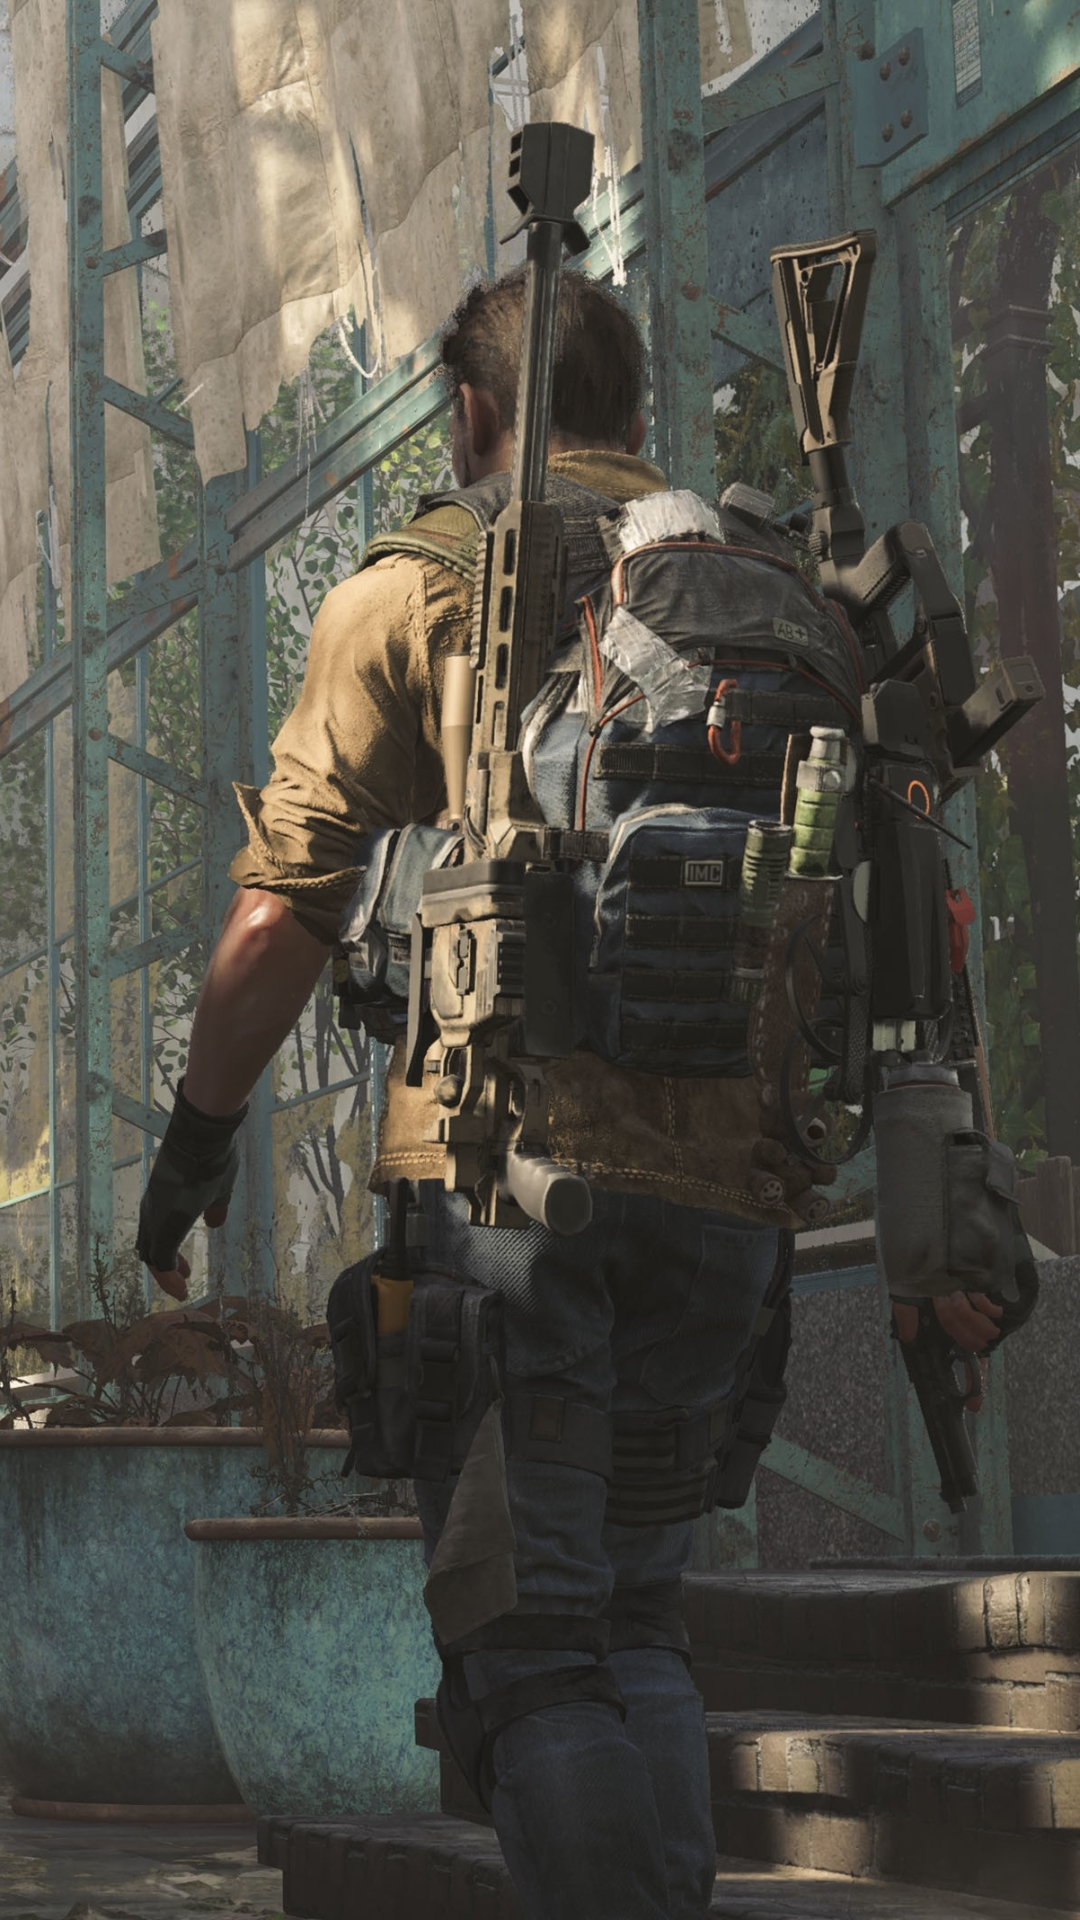 Video Game Tom Clancy S The Division 2 1080x1920 Wallpaper Id